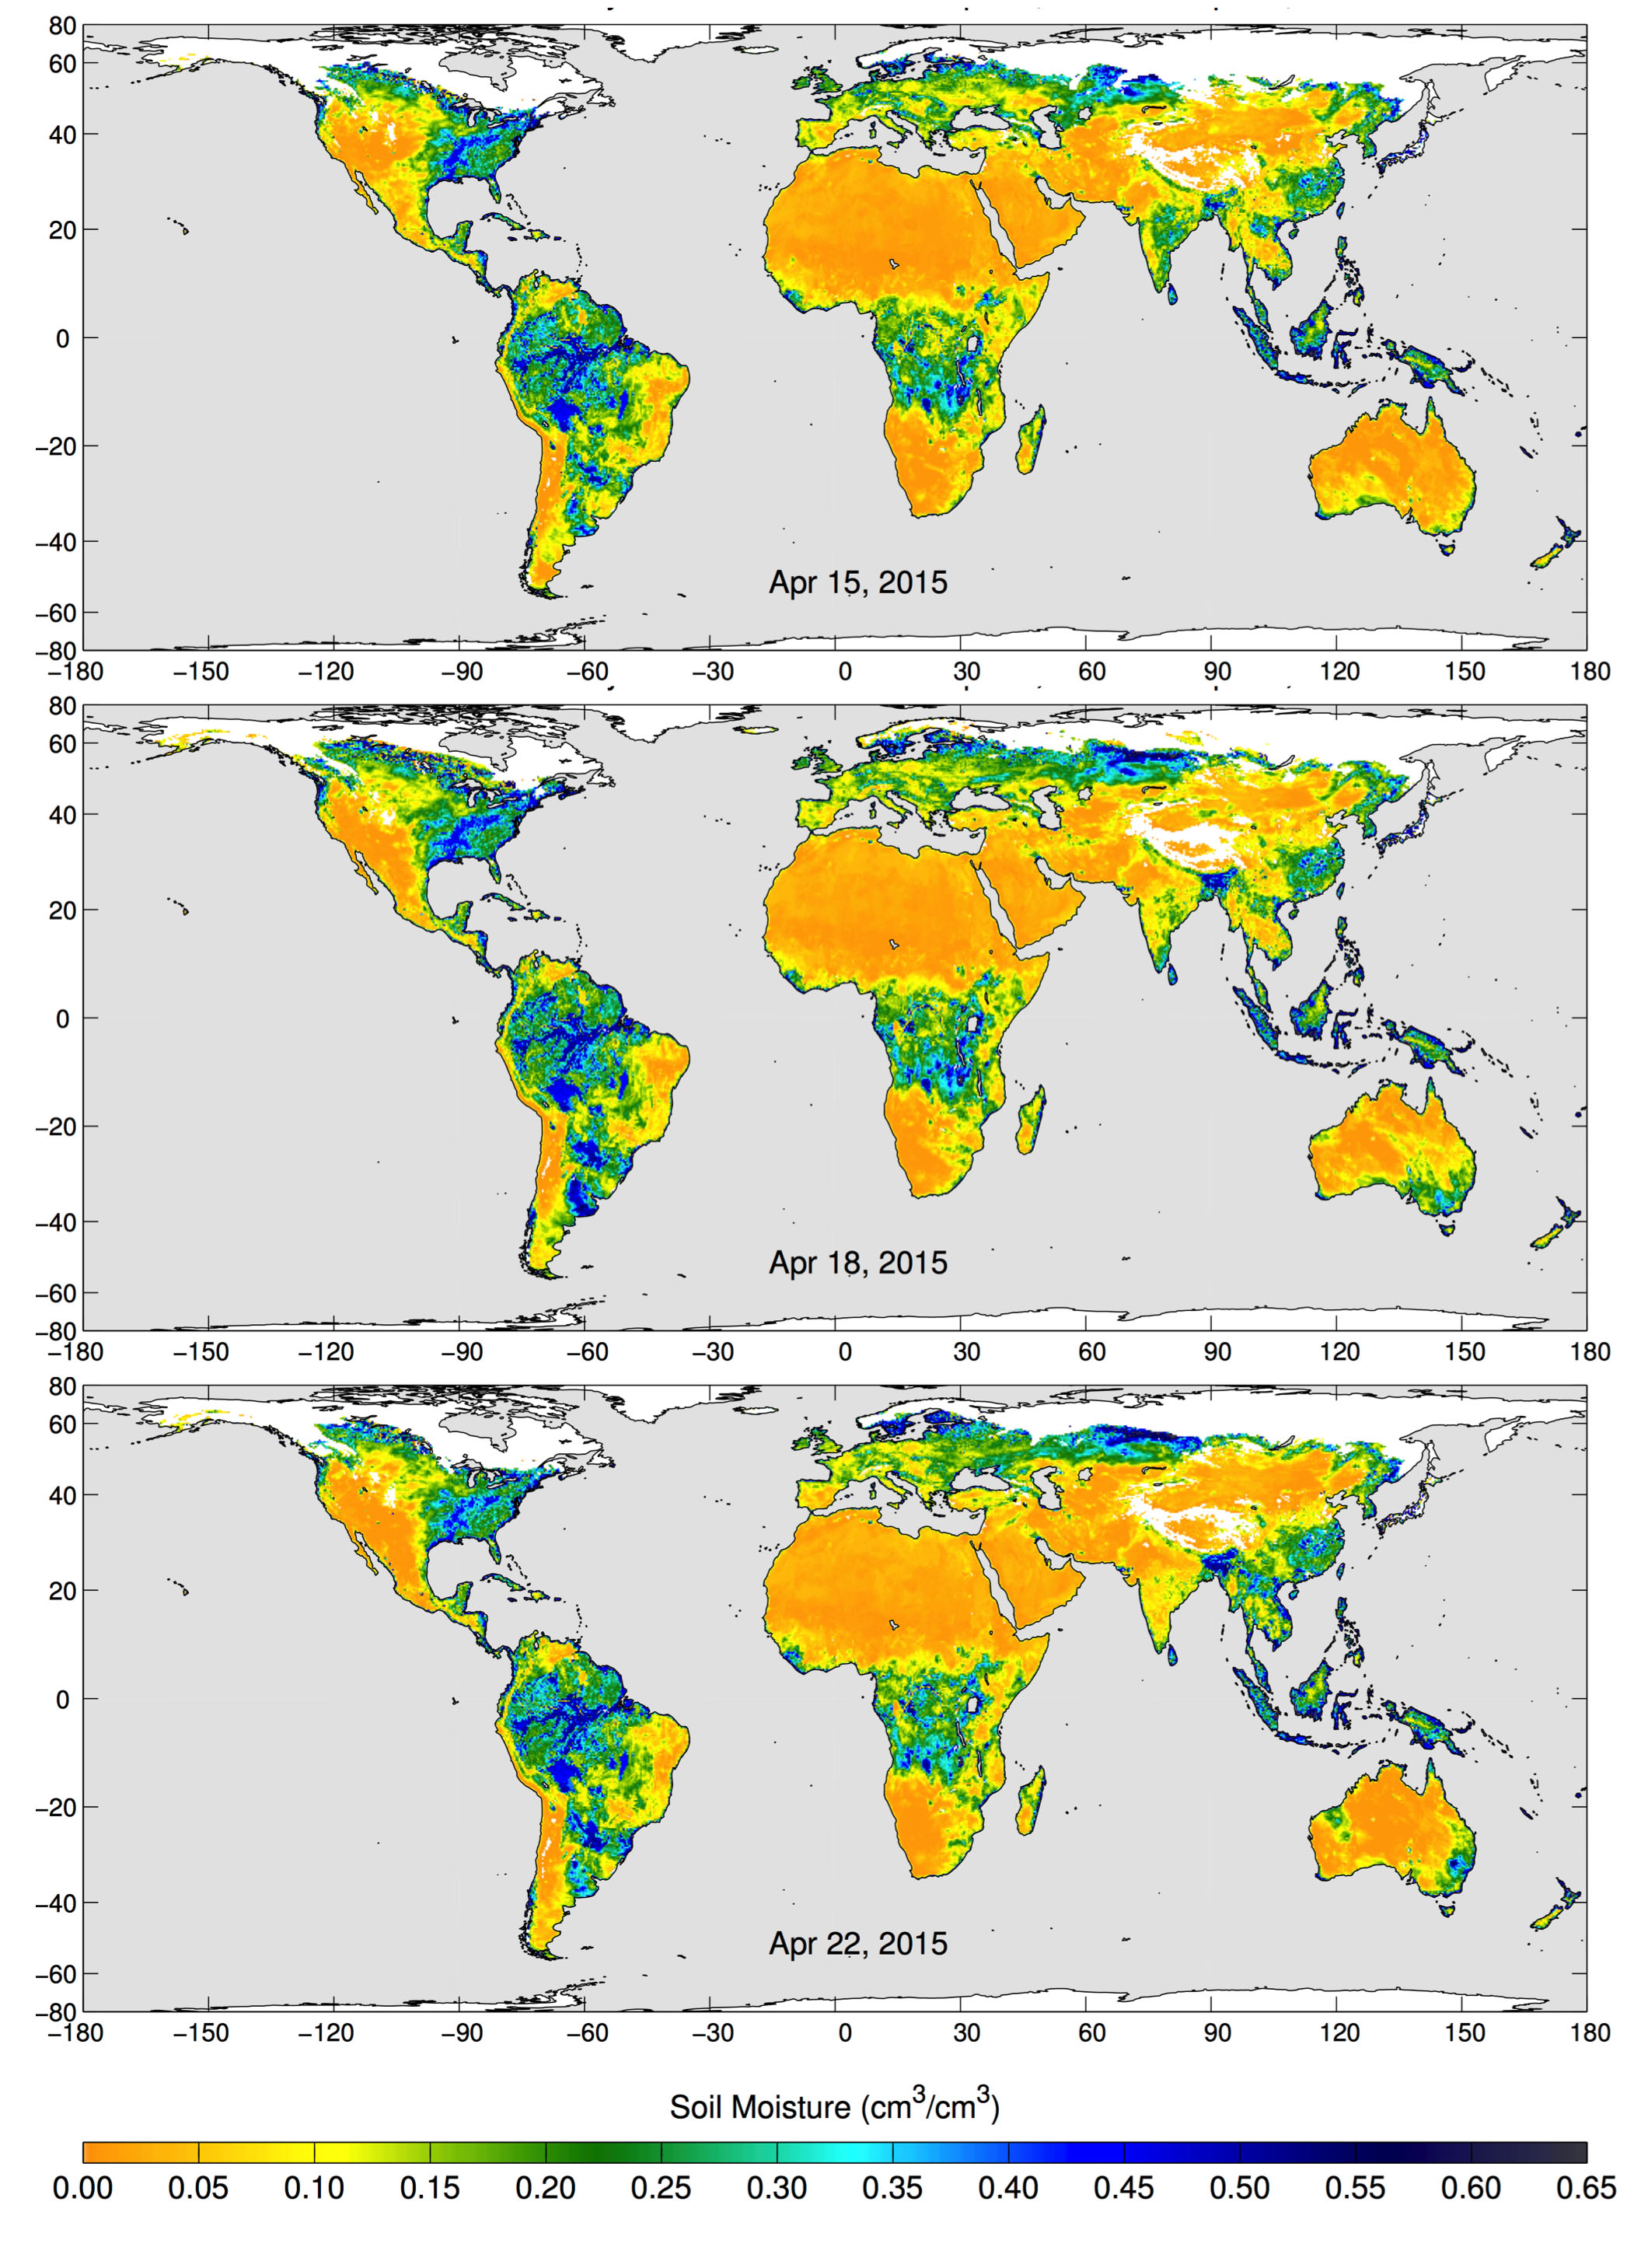 These maps of global soil moisture were created using data from the radiometer instrument on NASA's Soil Moisture Active Passive (SMAP) observatory. Each image is a composite of three days of SMAP radiometer data, centered on April 15, 18 and 22, 2015. The images show the volumetric water content in the top 2 inches (5 centimeters) of soil. Wetter areas are blue and drier areas are yellow. White areas indicate snow, ice or frozen ground.